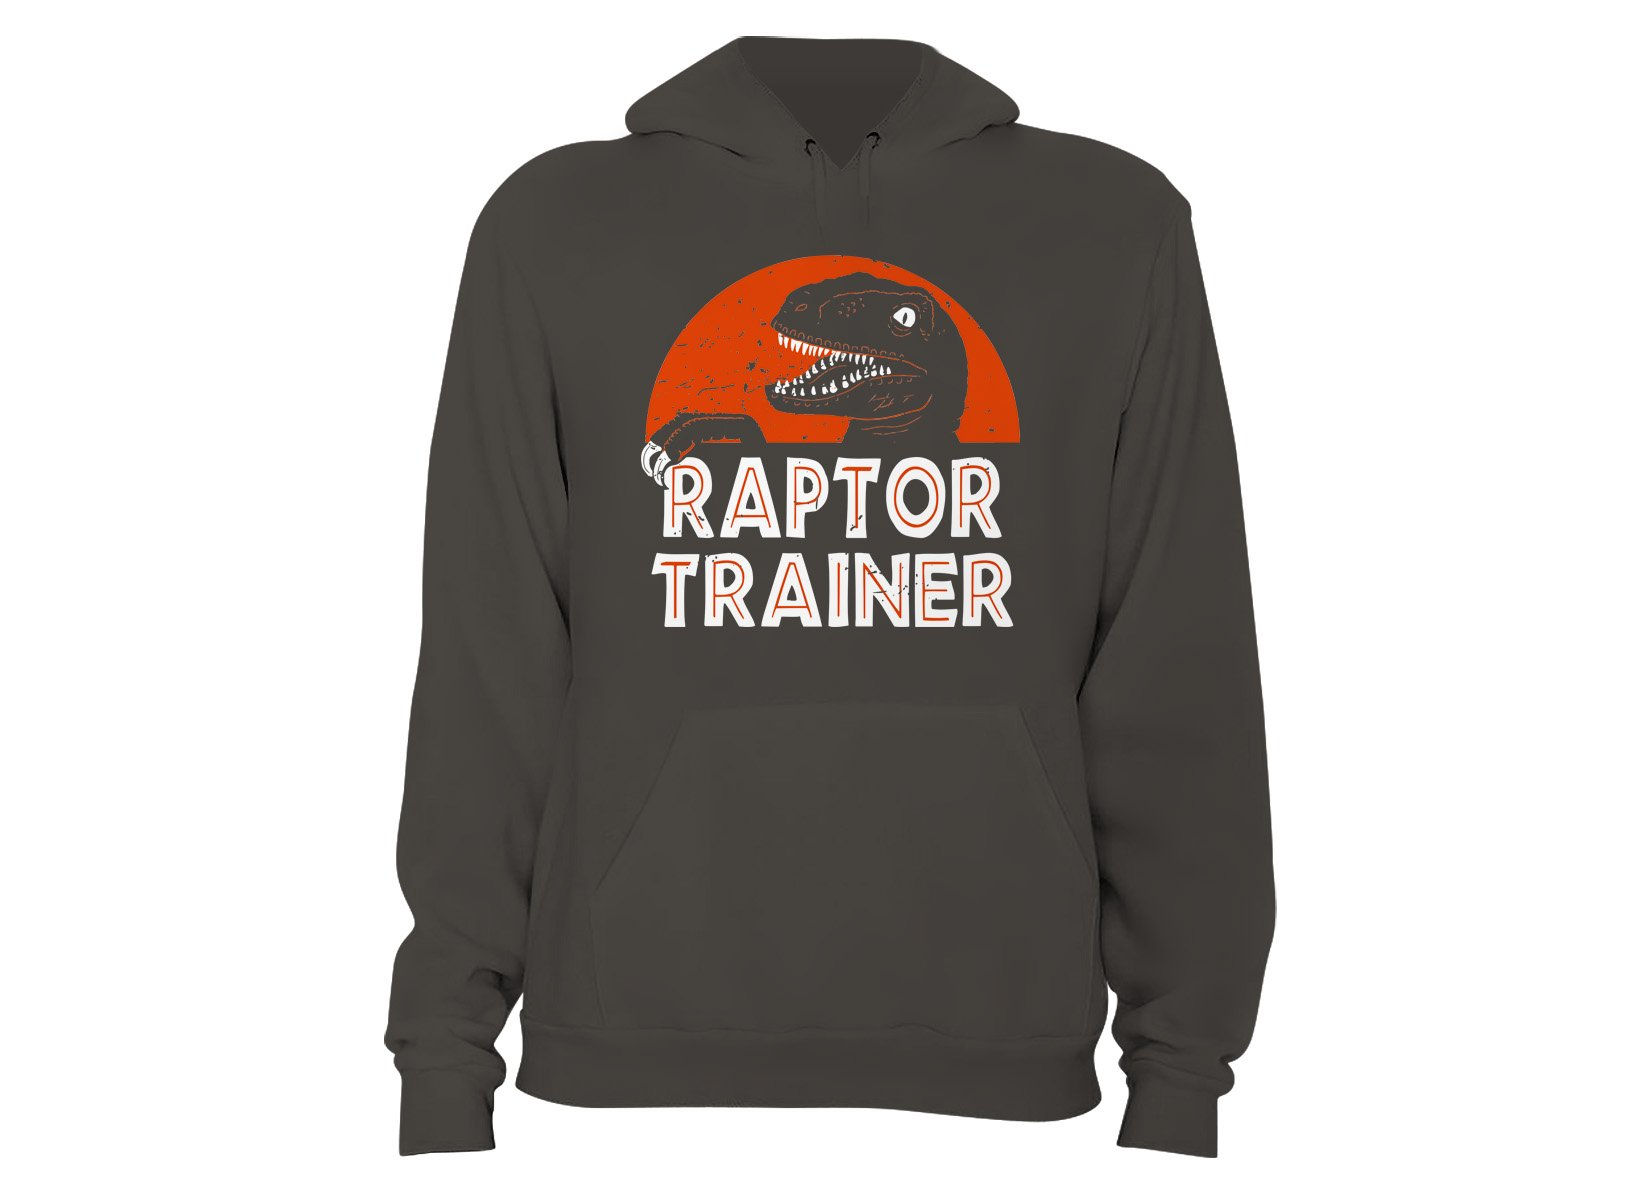 Raptor Trainer on Hoodie